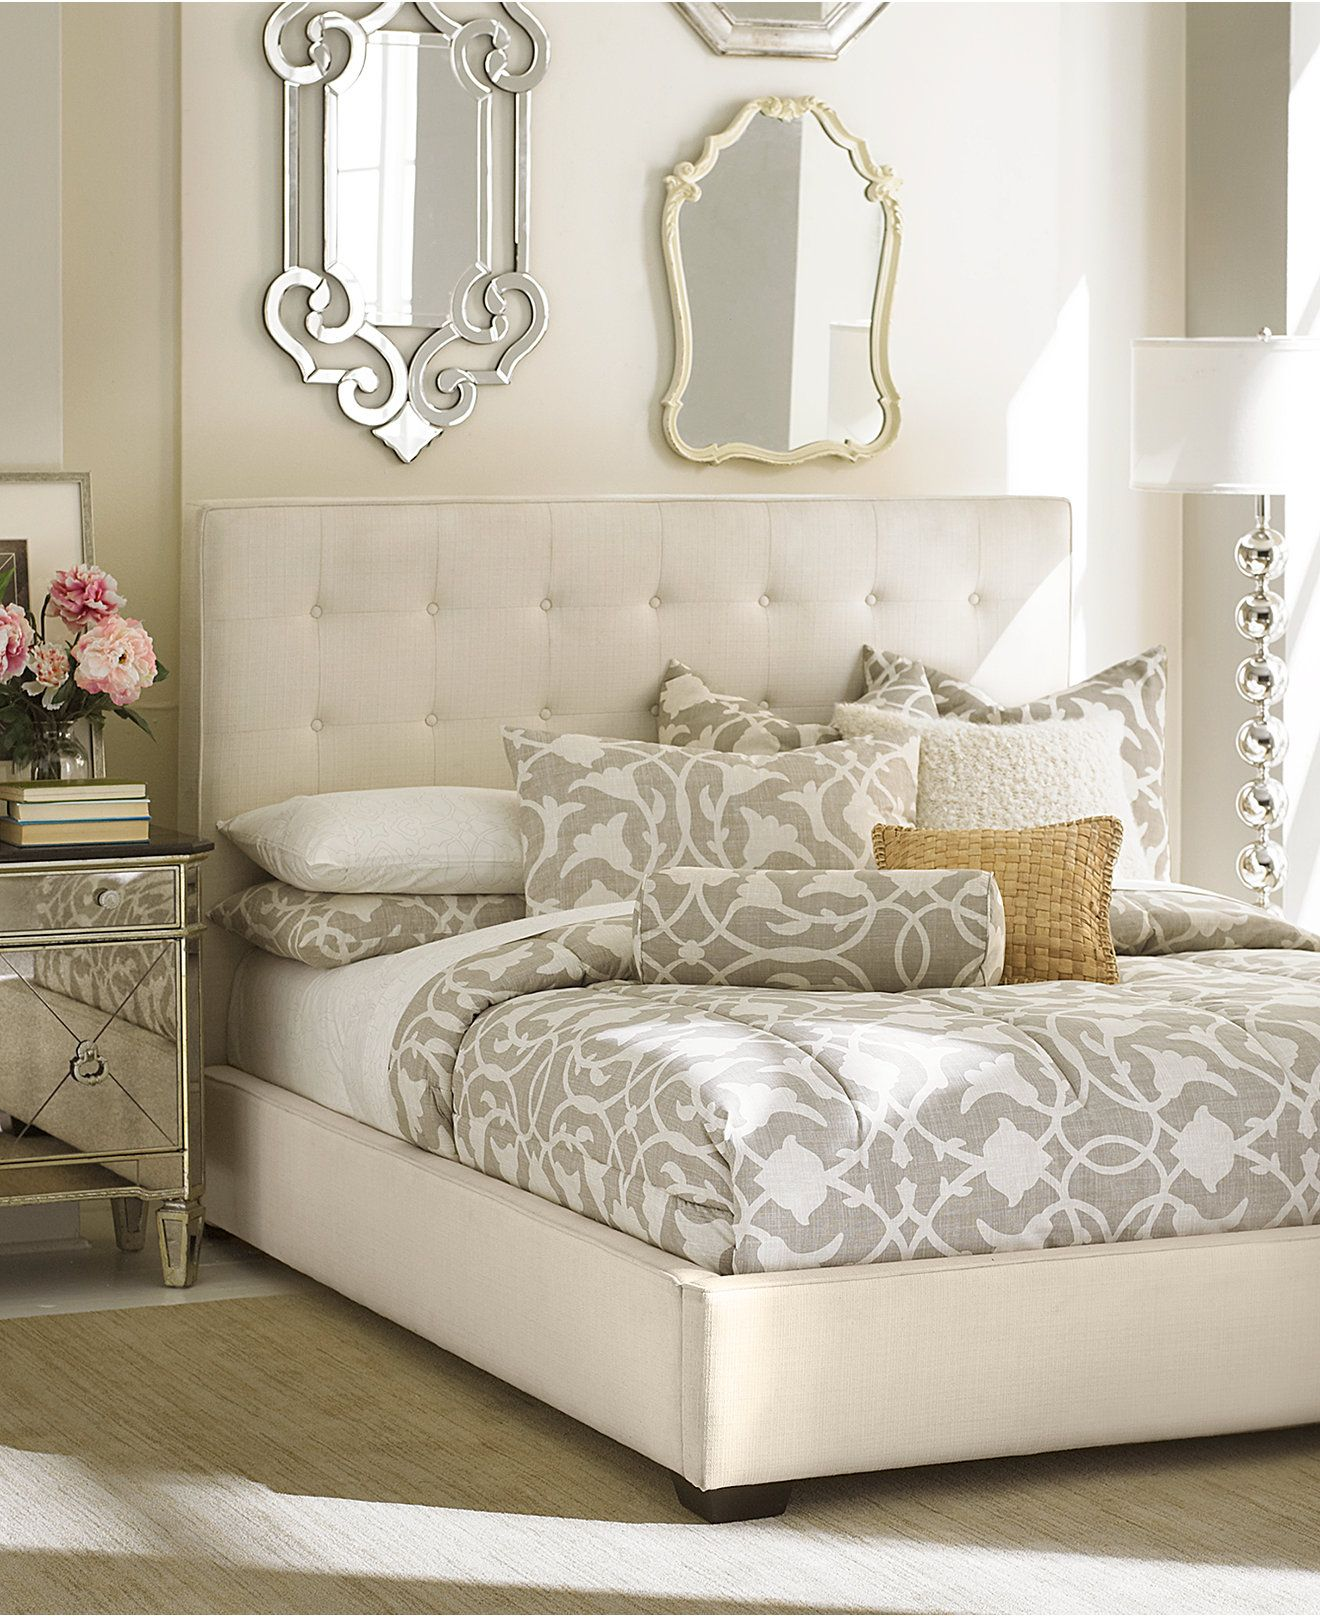 Macys Furniture Nyc: Manhattan Bedroom Furniture Collection